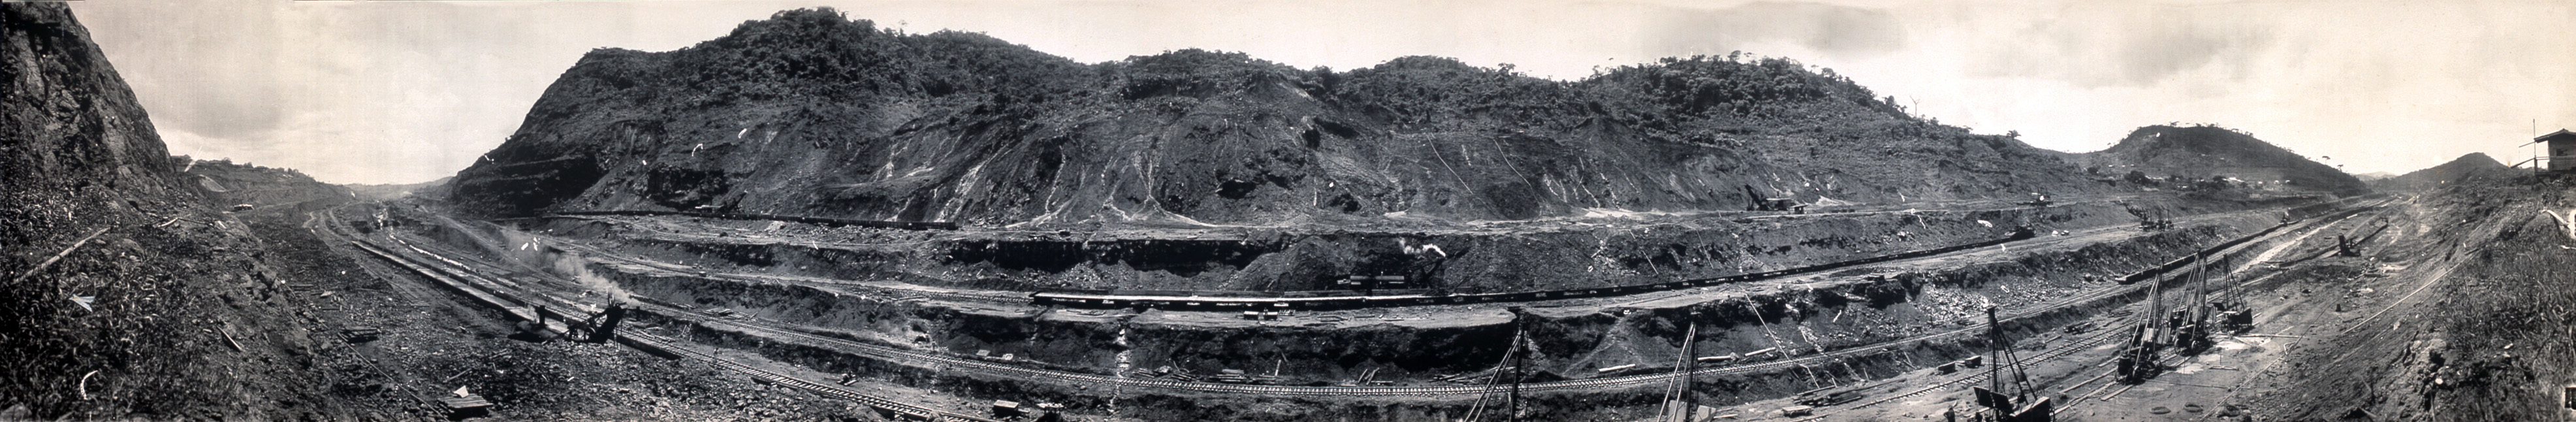 the historical construction of the panama canal A modern wonder of the world, the panama canal is 100 years old learn how it  was built in this pictorial history.